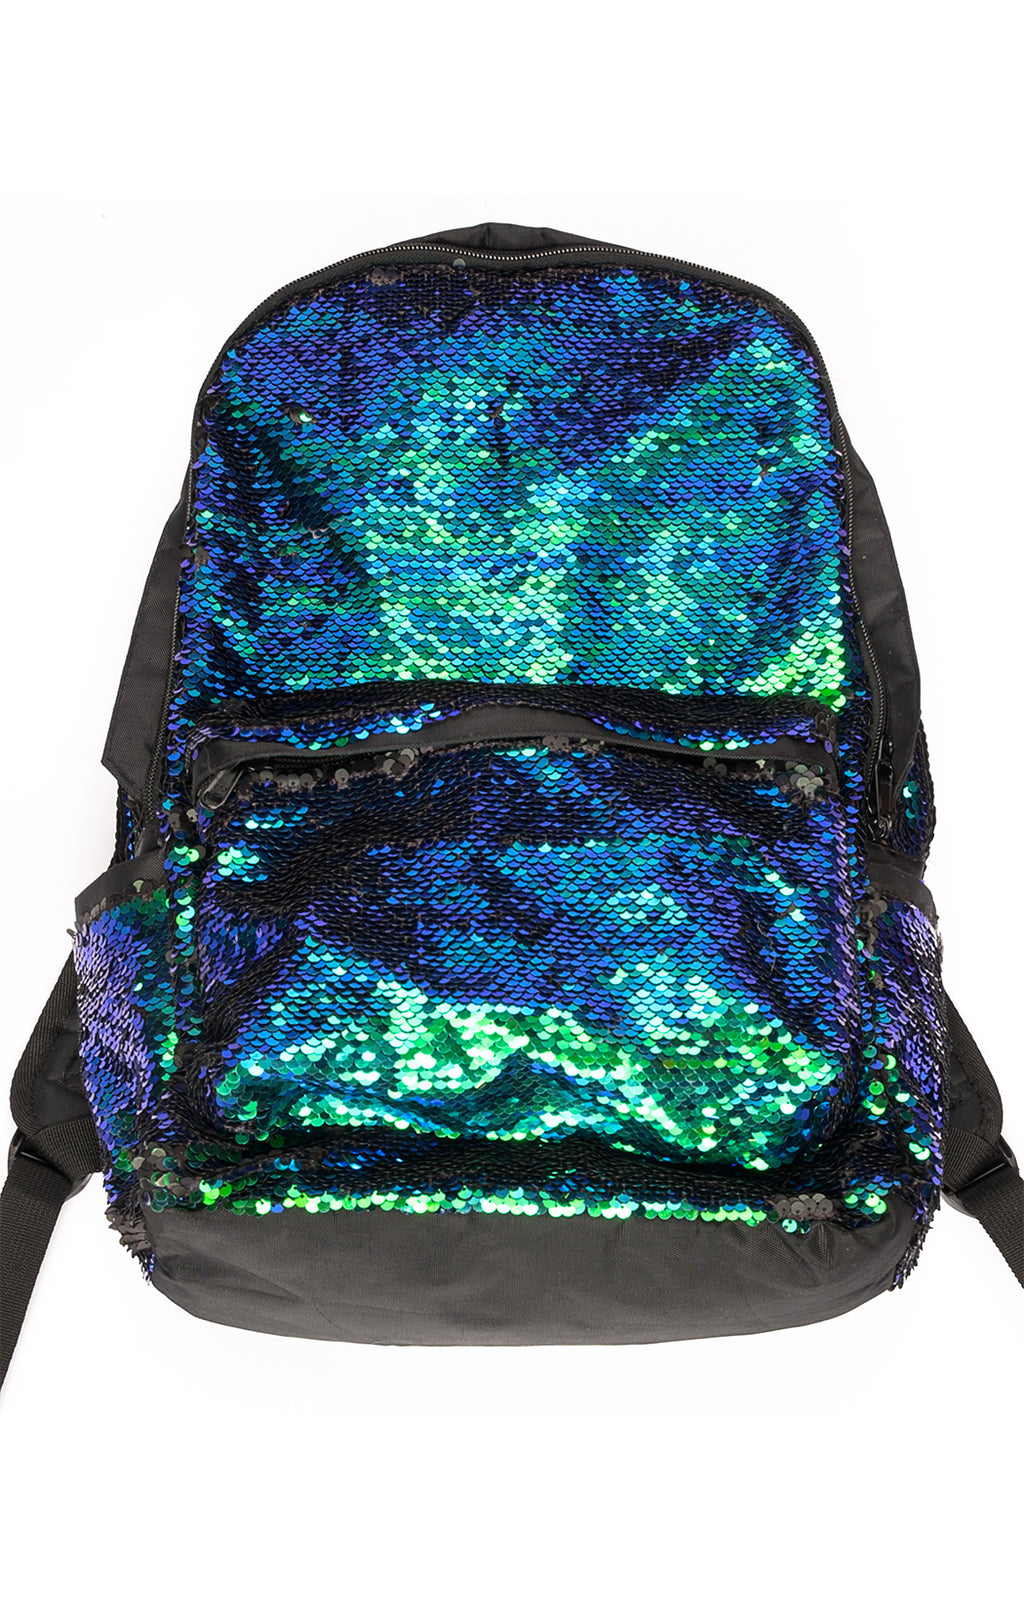 "Front view of NO NAME  Backpack Size: 12"" W x 17"" H x 5"" D"